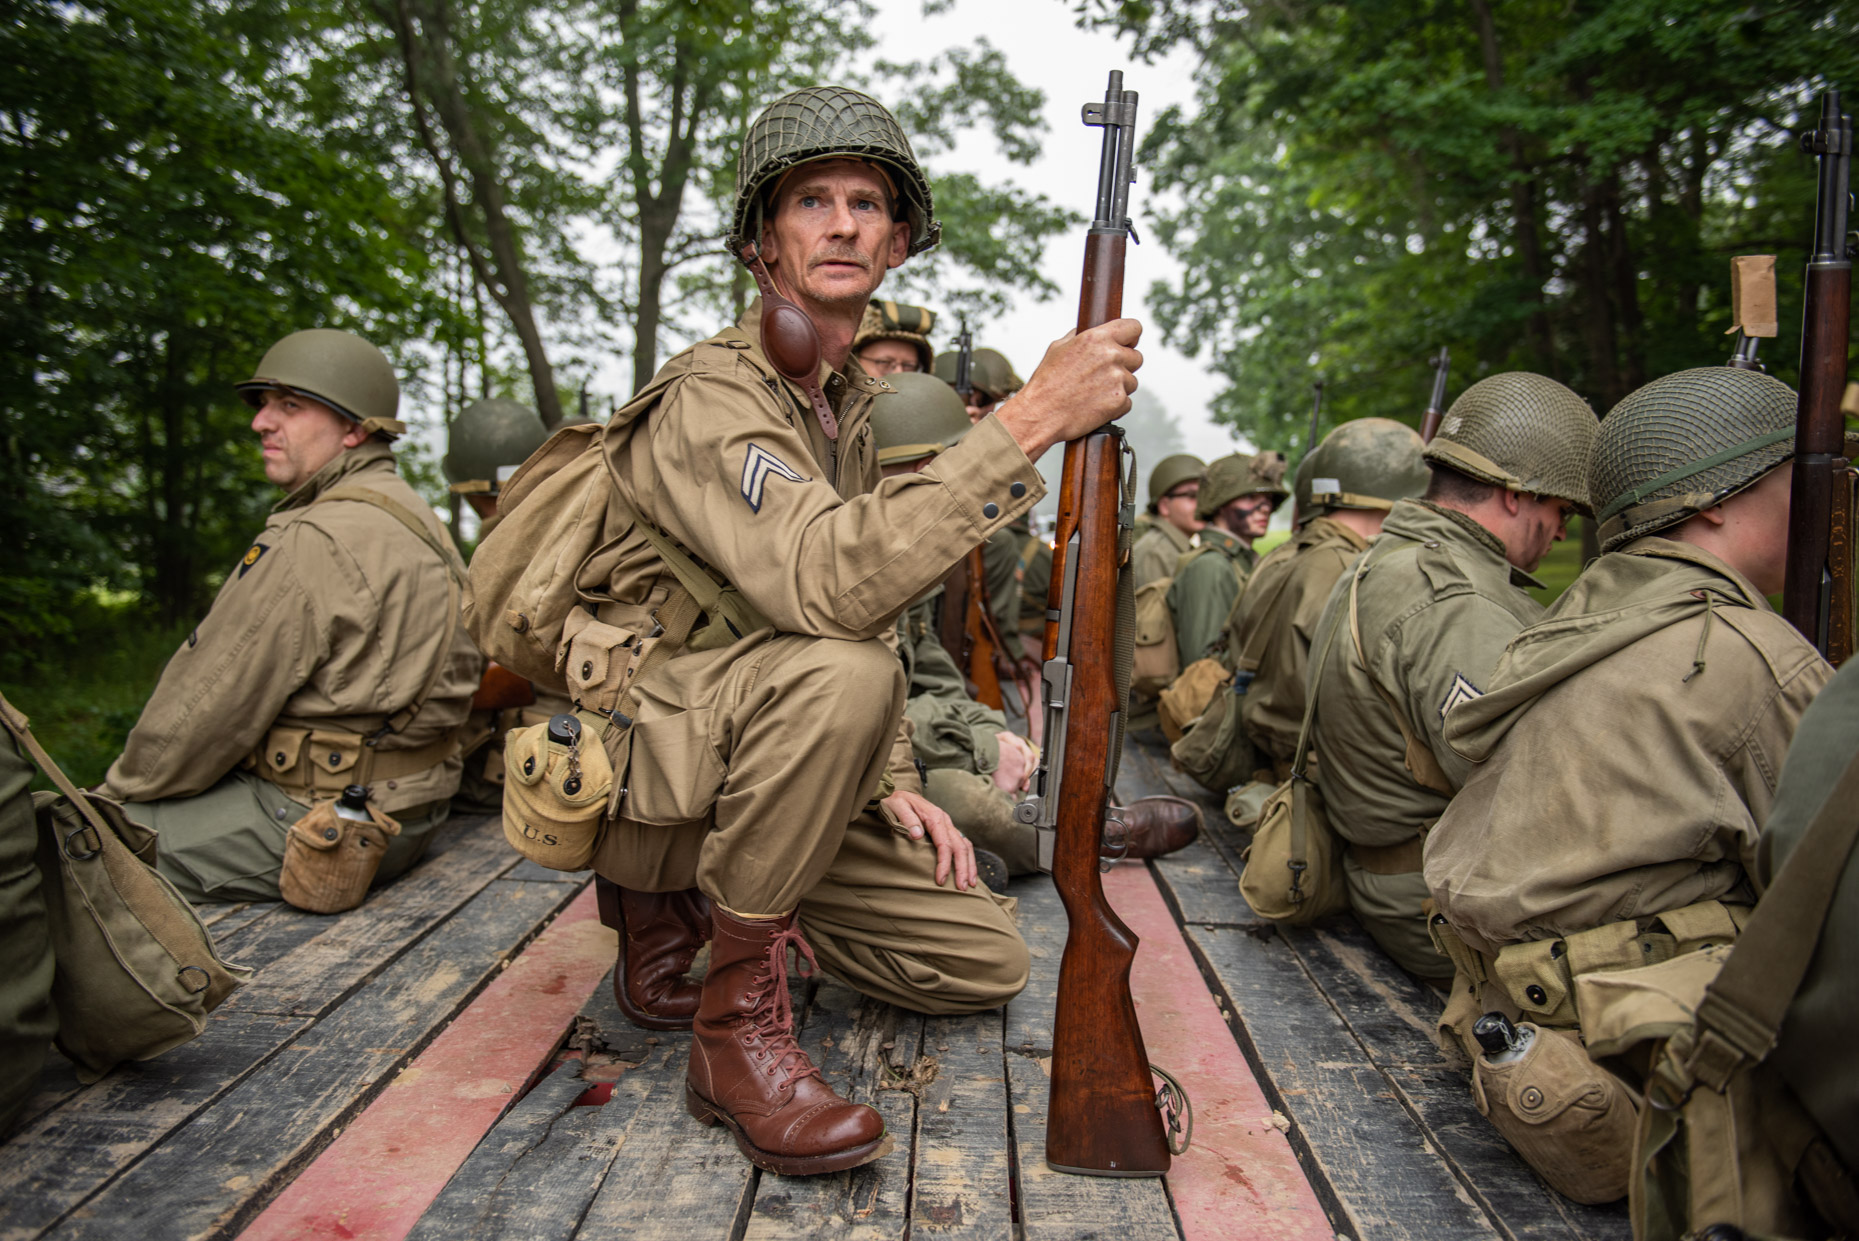 WWII Reenactment (Tidioute, PA)